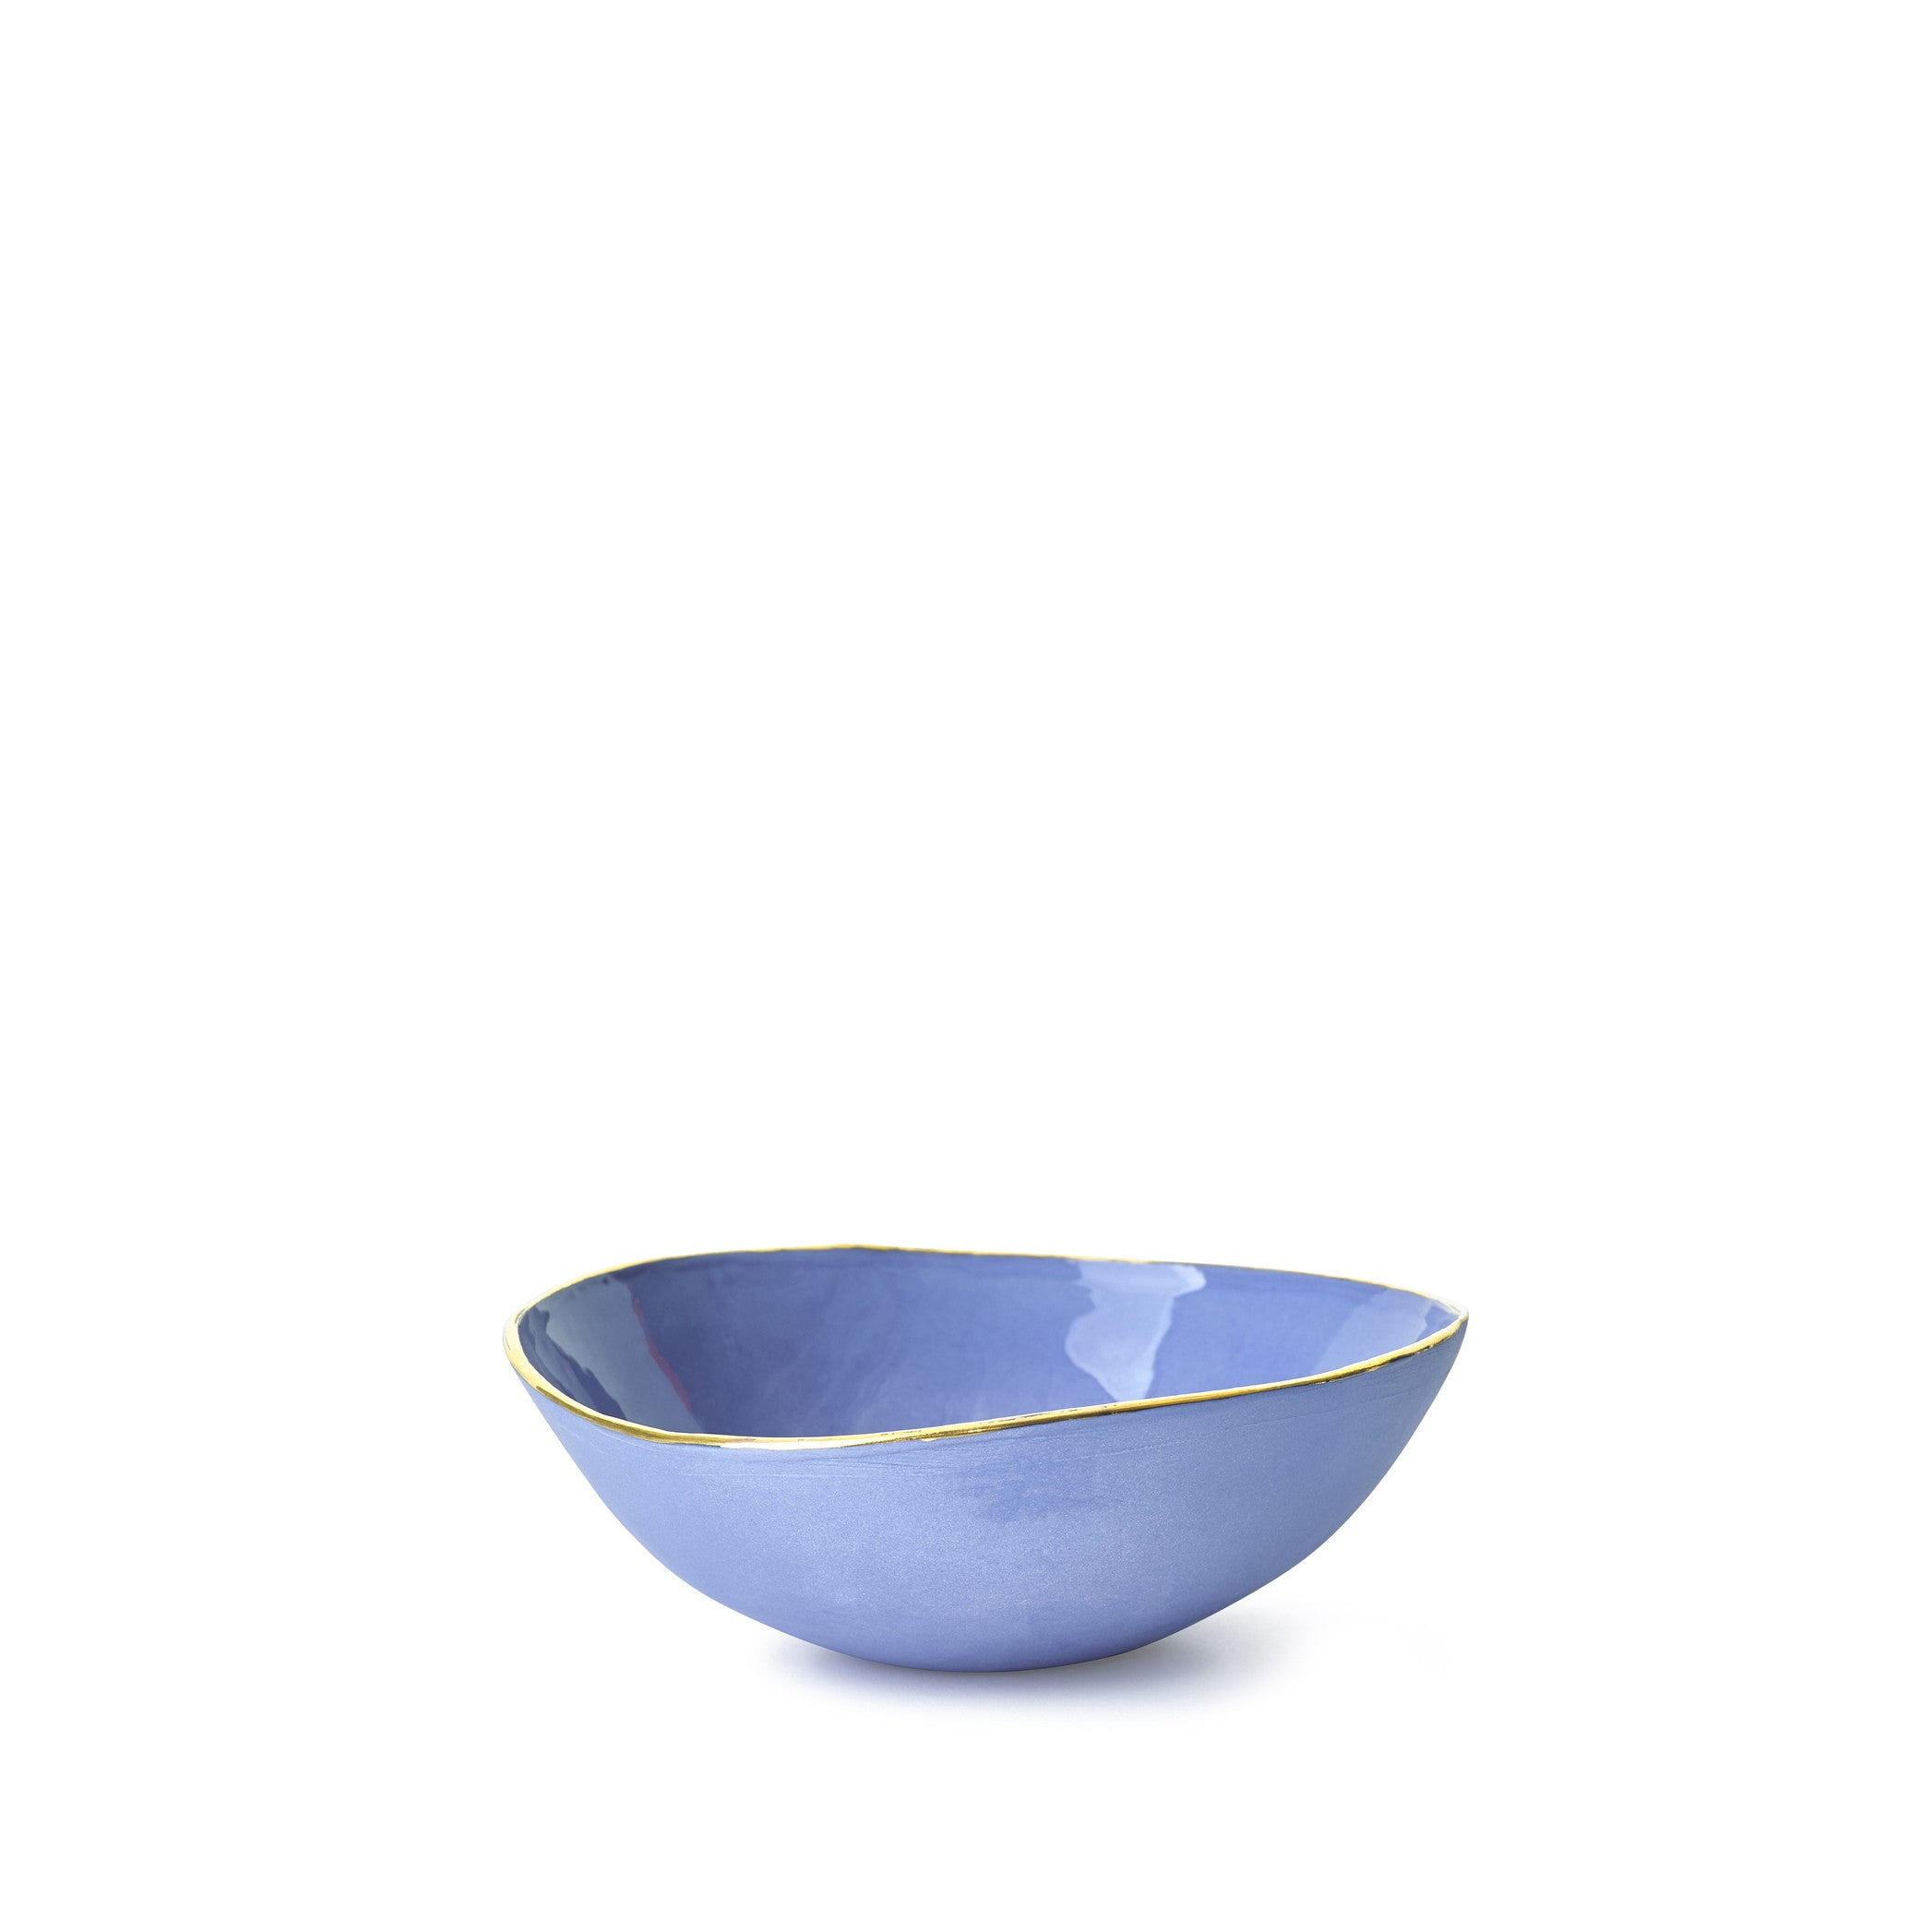 Full Painted Blue Ceramic Bowl with Gold Rim, 10cm